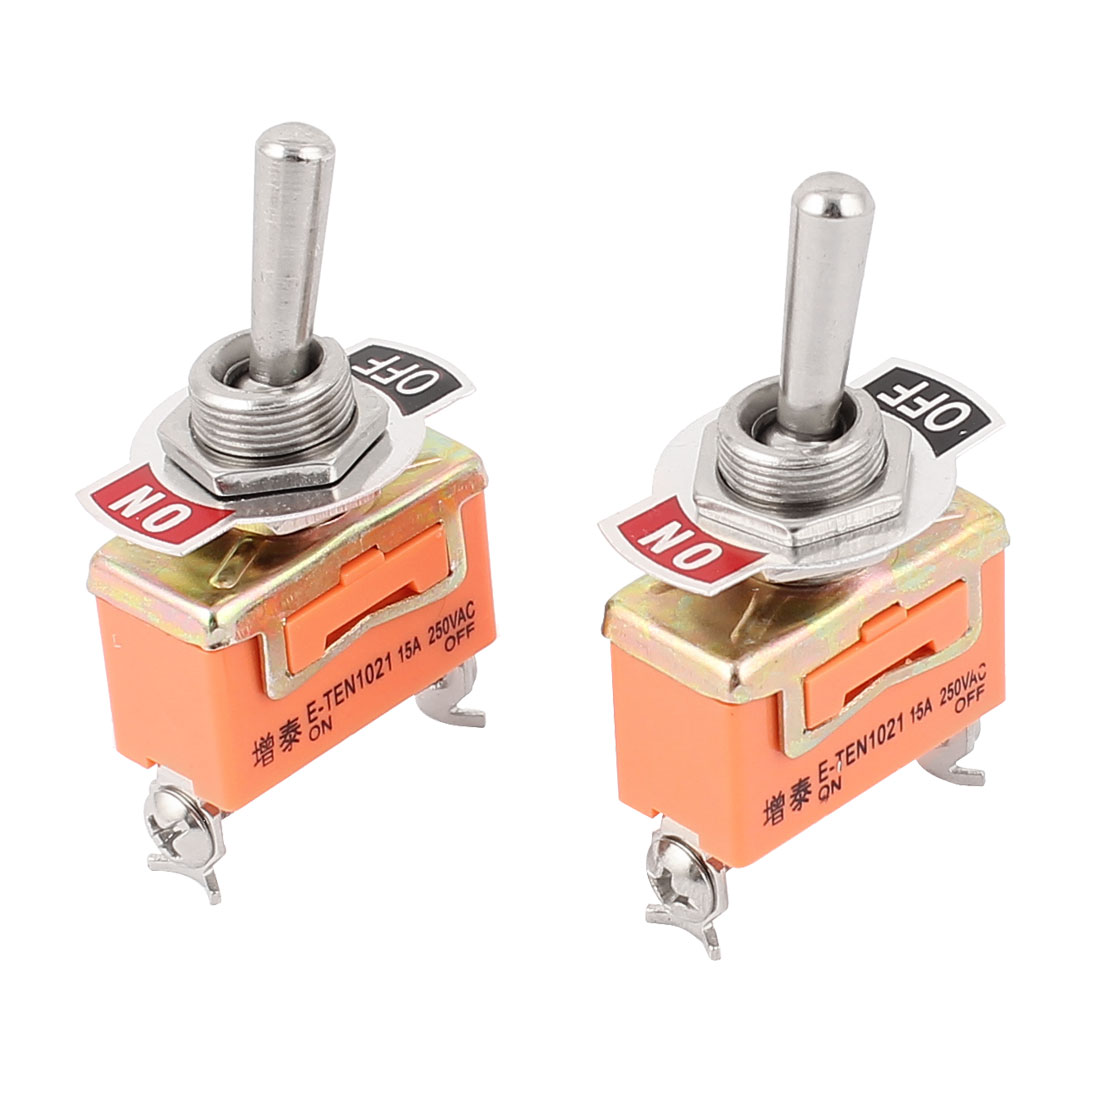 AC 250V 15A SPST ON-OFF 2 Pin Latching Miniature Toggle Switch 2Pcs